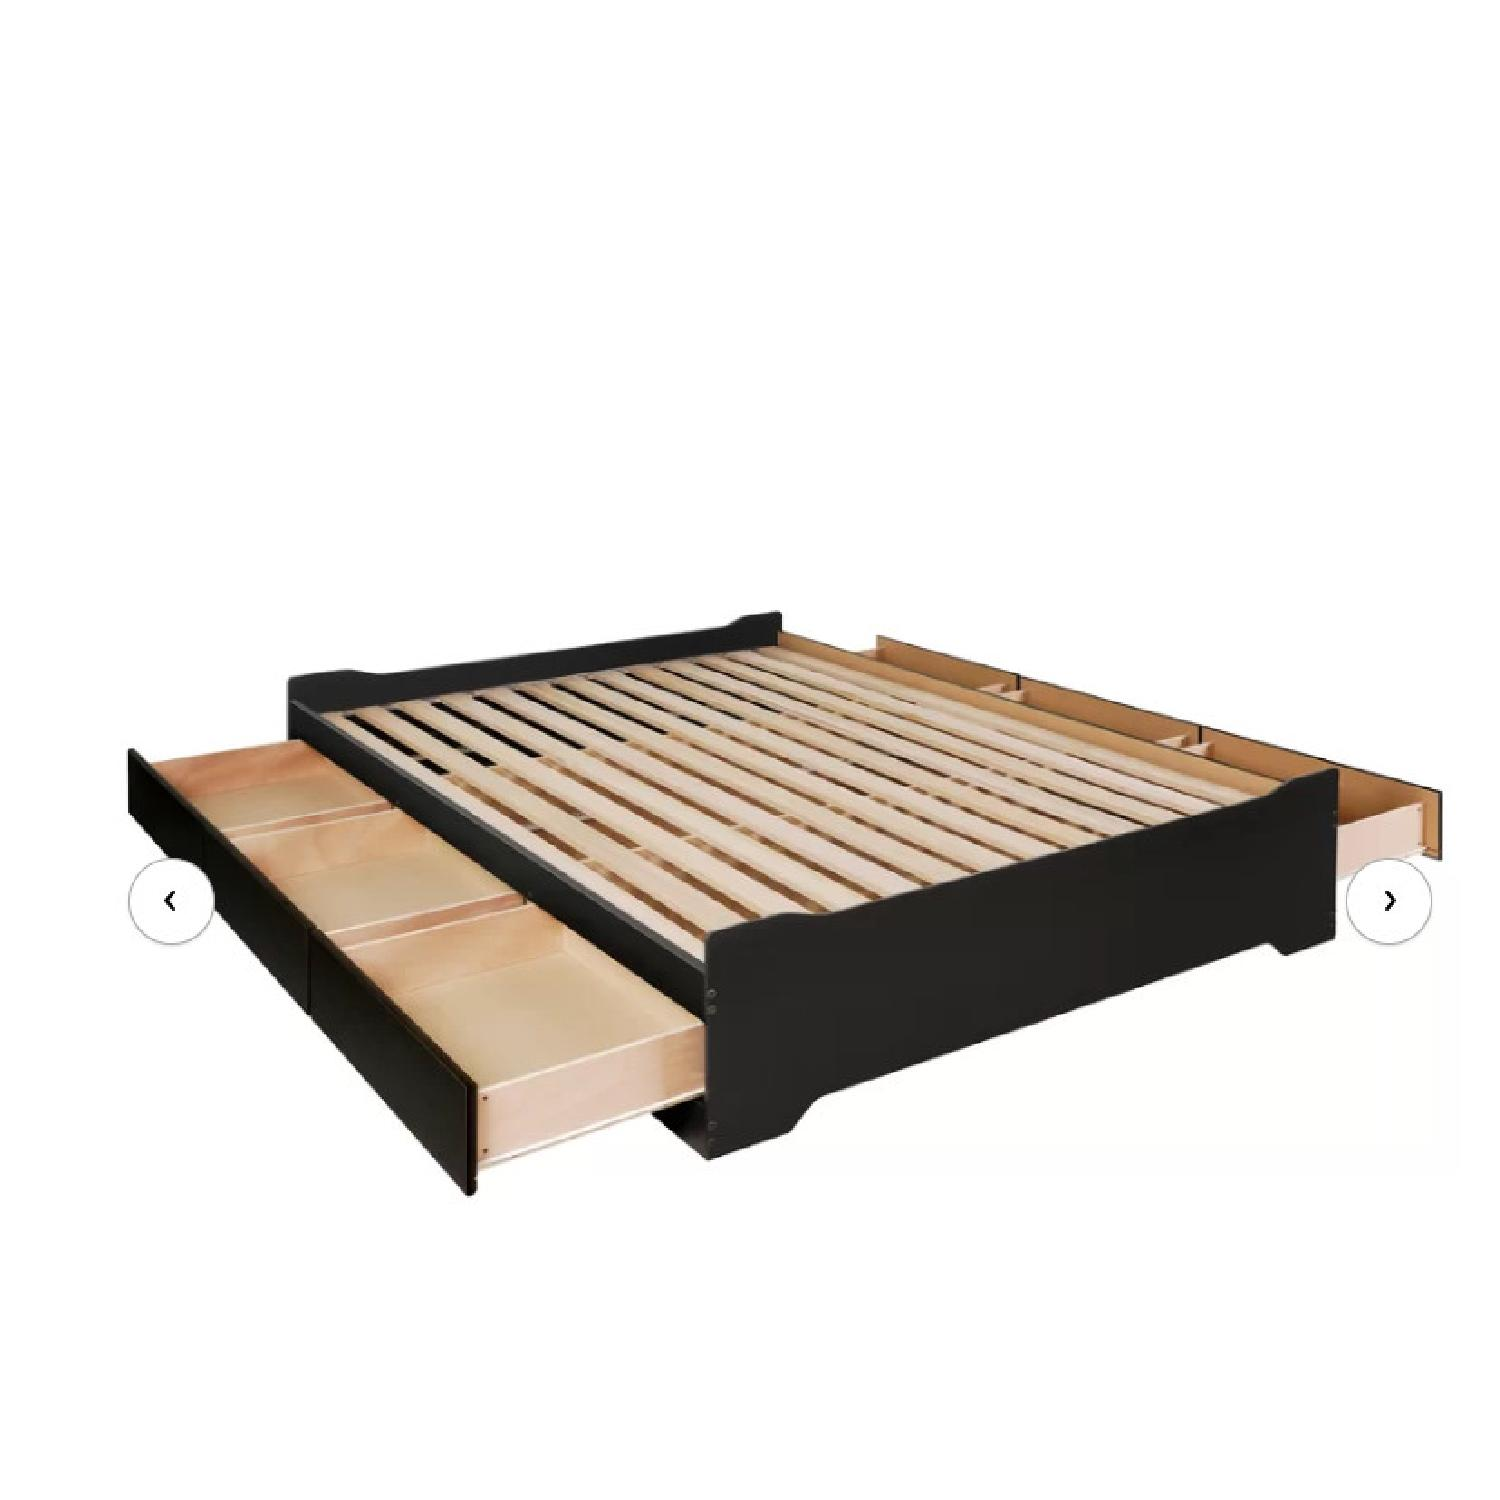 Zipcode Design Oleanna 6-Drawer Full-Size Storage Bed - image-1